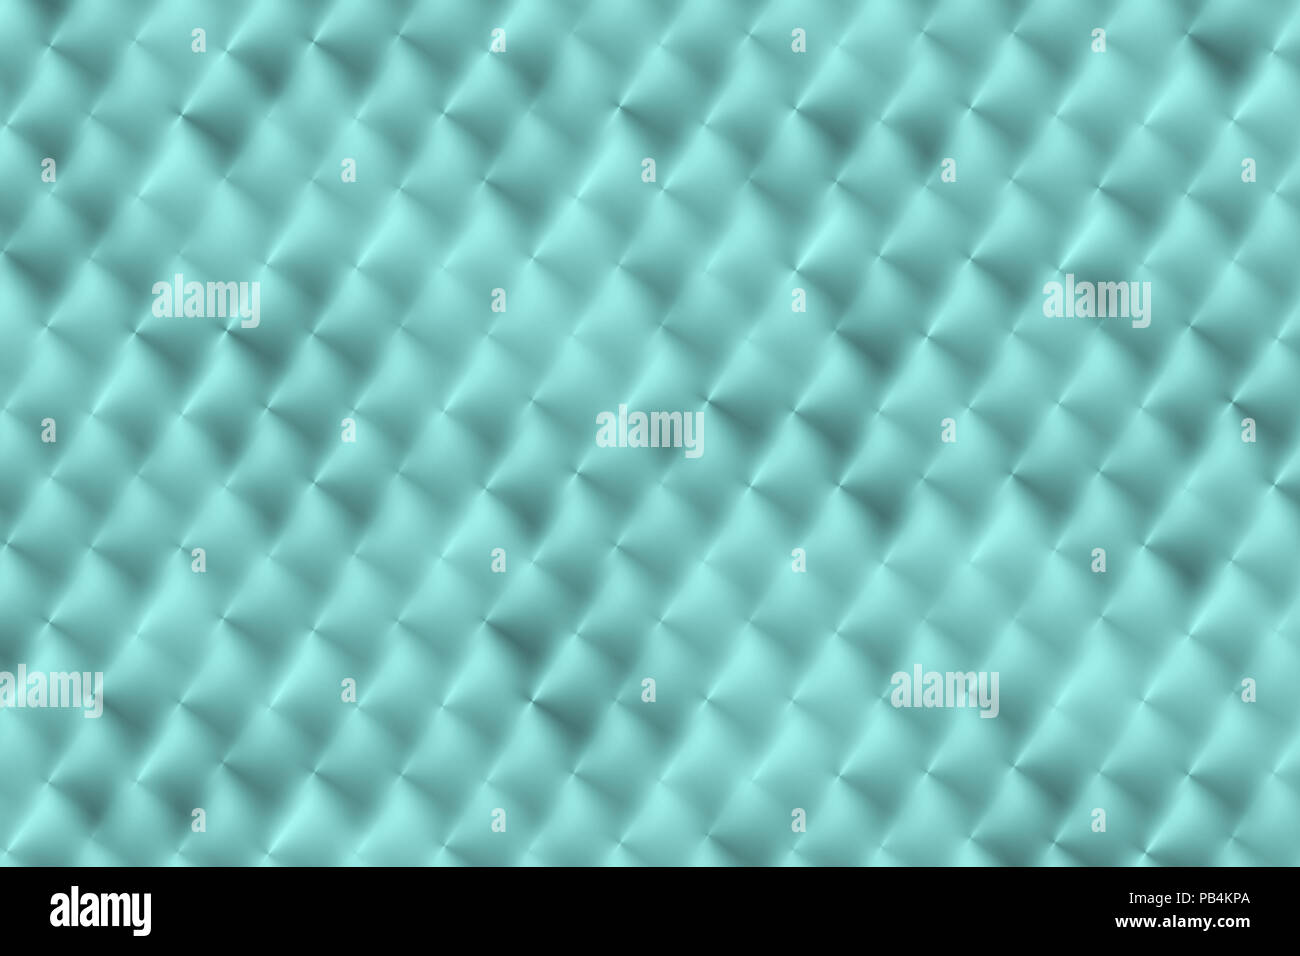 Brushed metal surface. Texture of metal. Abstract steel background - Stock Image